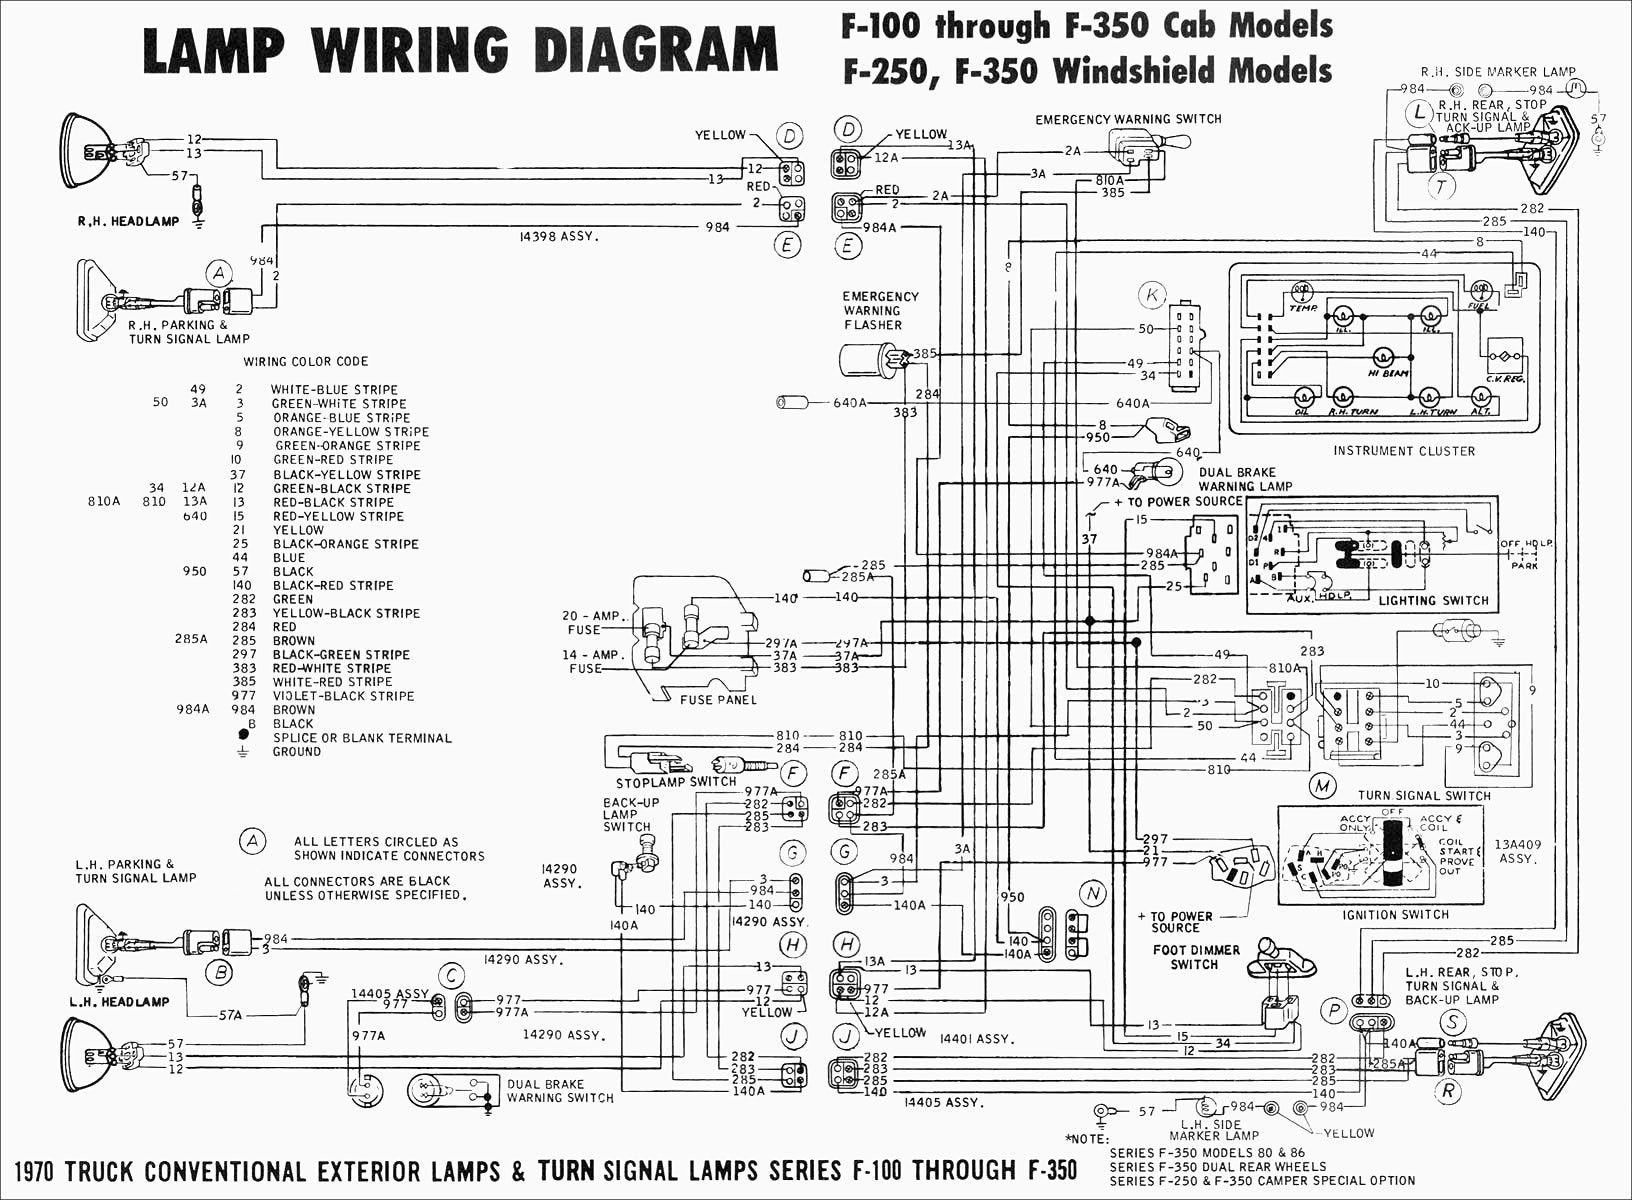 Motor Washing Wiring Machine Diagramcws3600asi - Wiring ... on